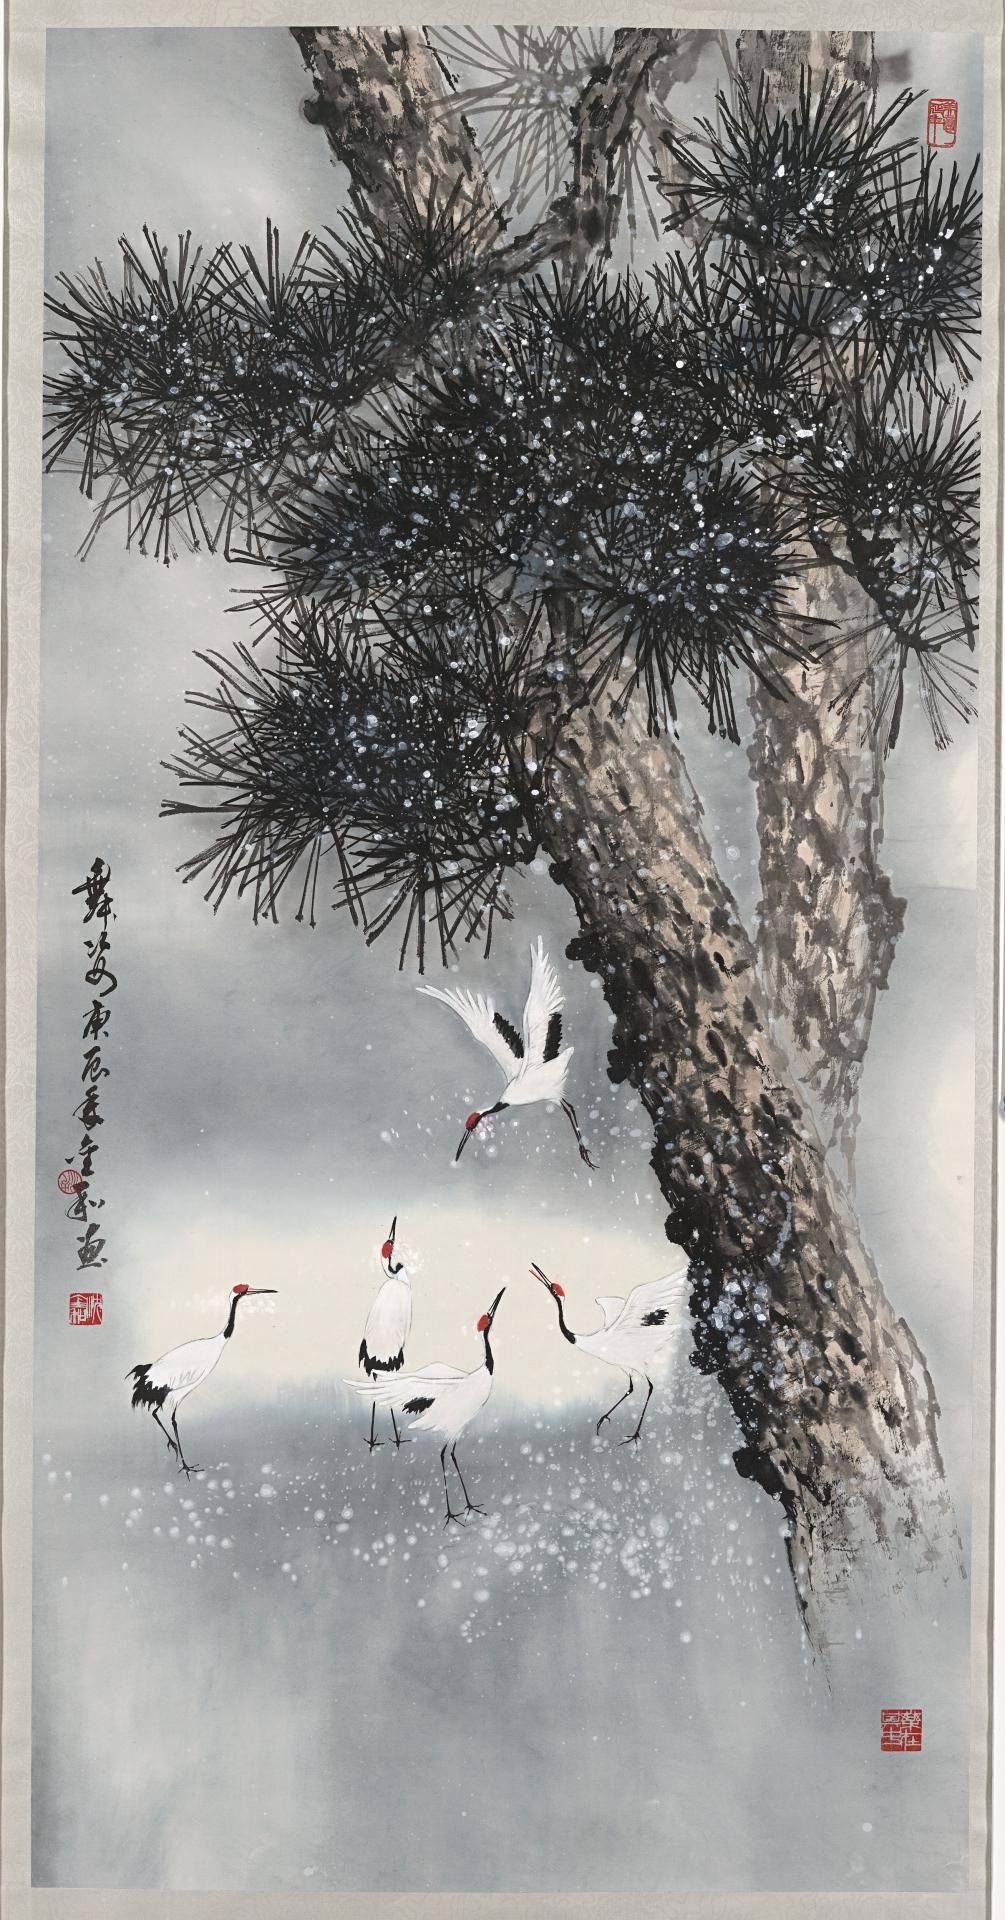 Pine with cranes dancing in the snow, dance in motion